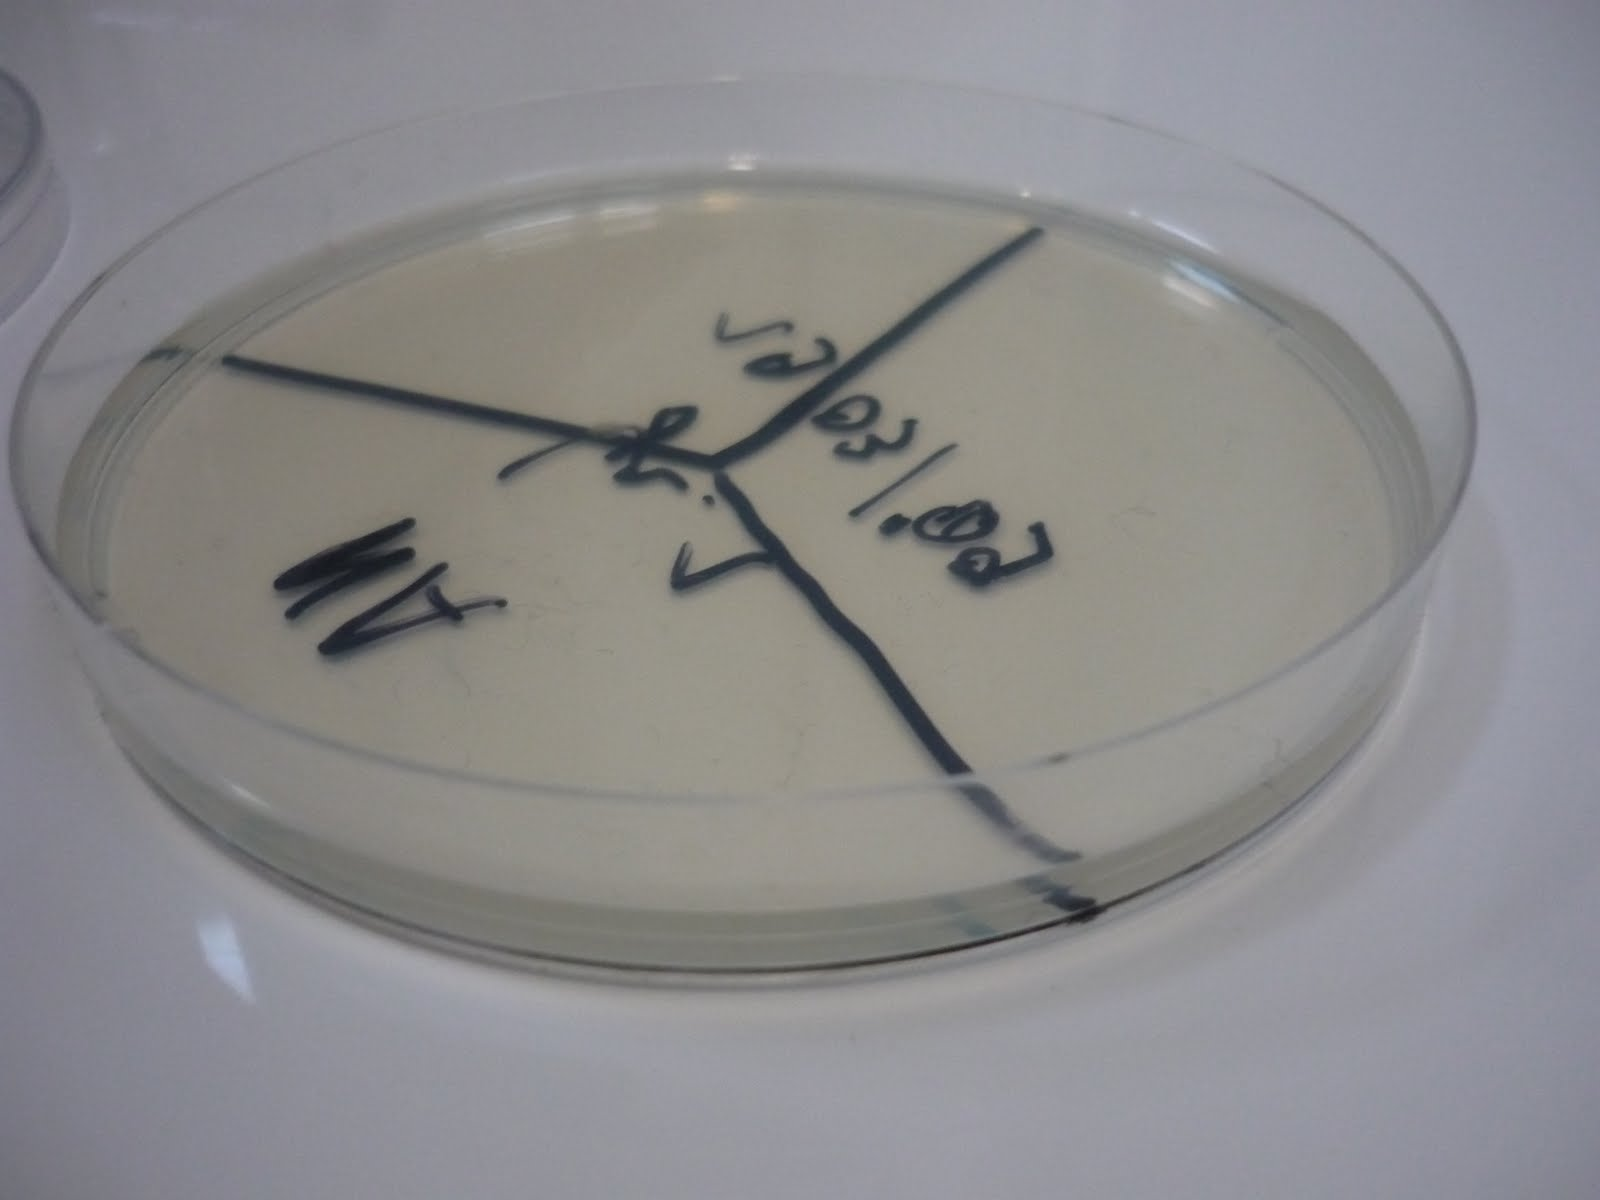 how to make nutrient agar plates